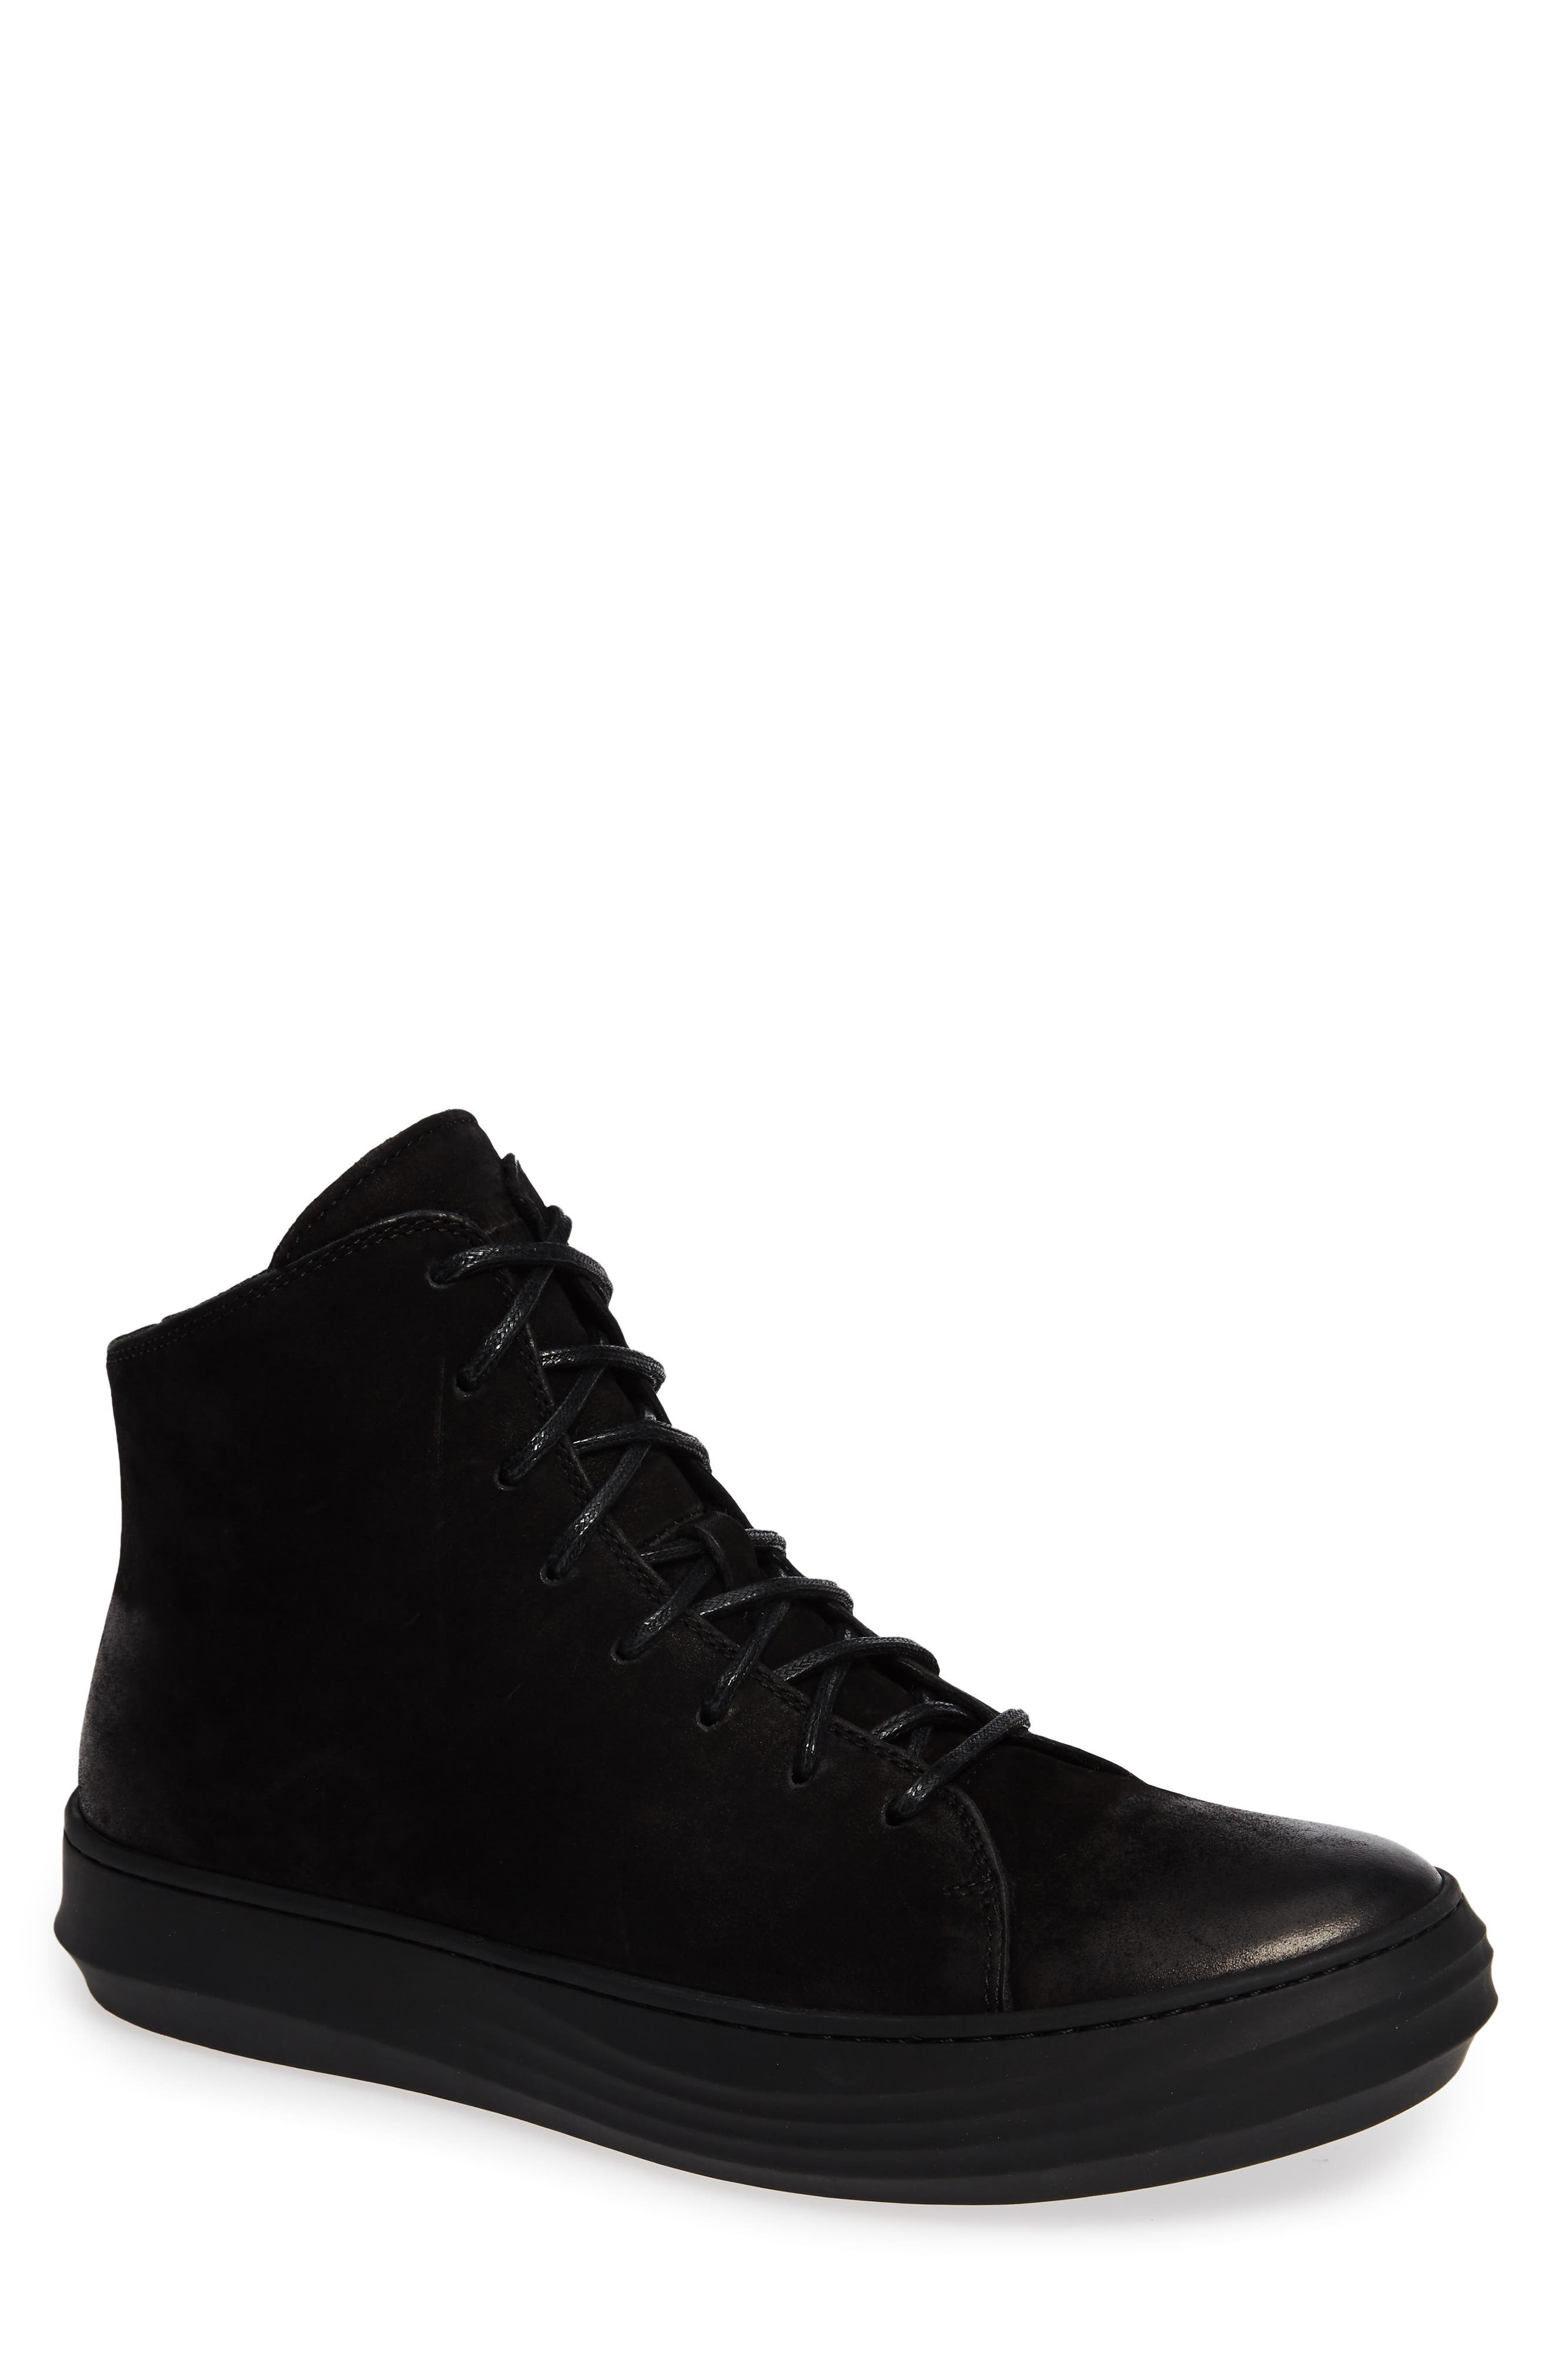 High Top Sneaker,                             Main thumbnail 1, color,                             BLACK LEATHER